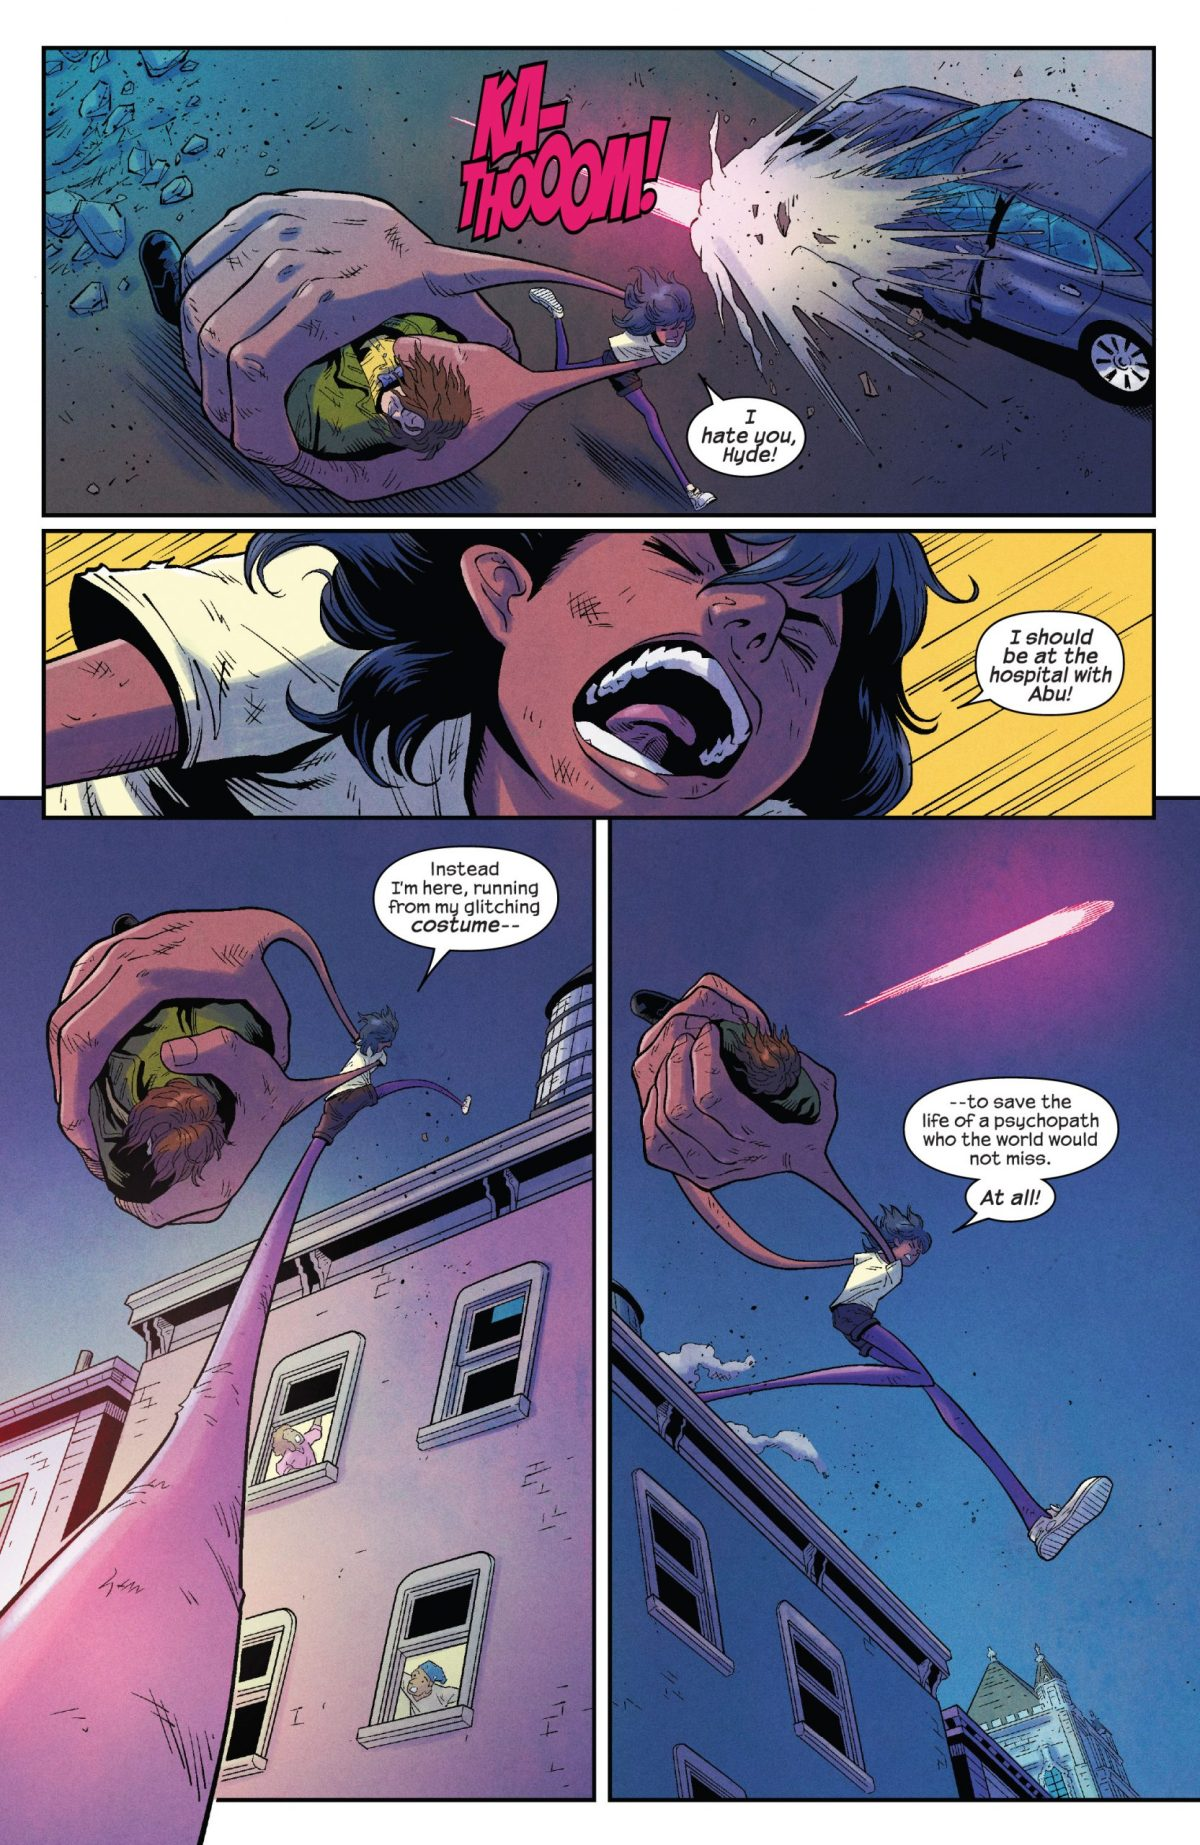 The Magnificent Ms Marvel #11: Page 8, Kamala runs through the streets of Jersey City carrying Hyde as Stormranger shoots at them.